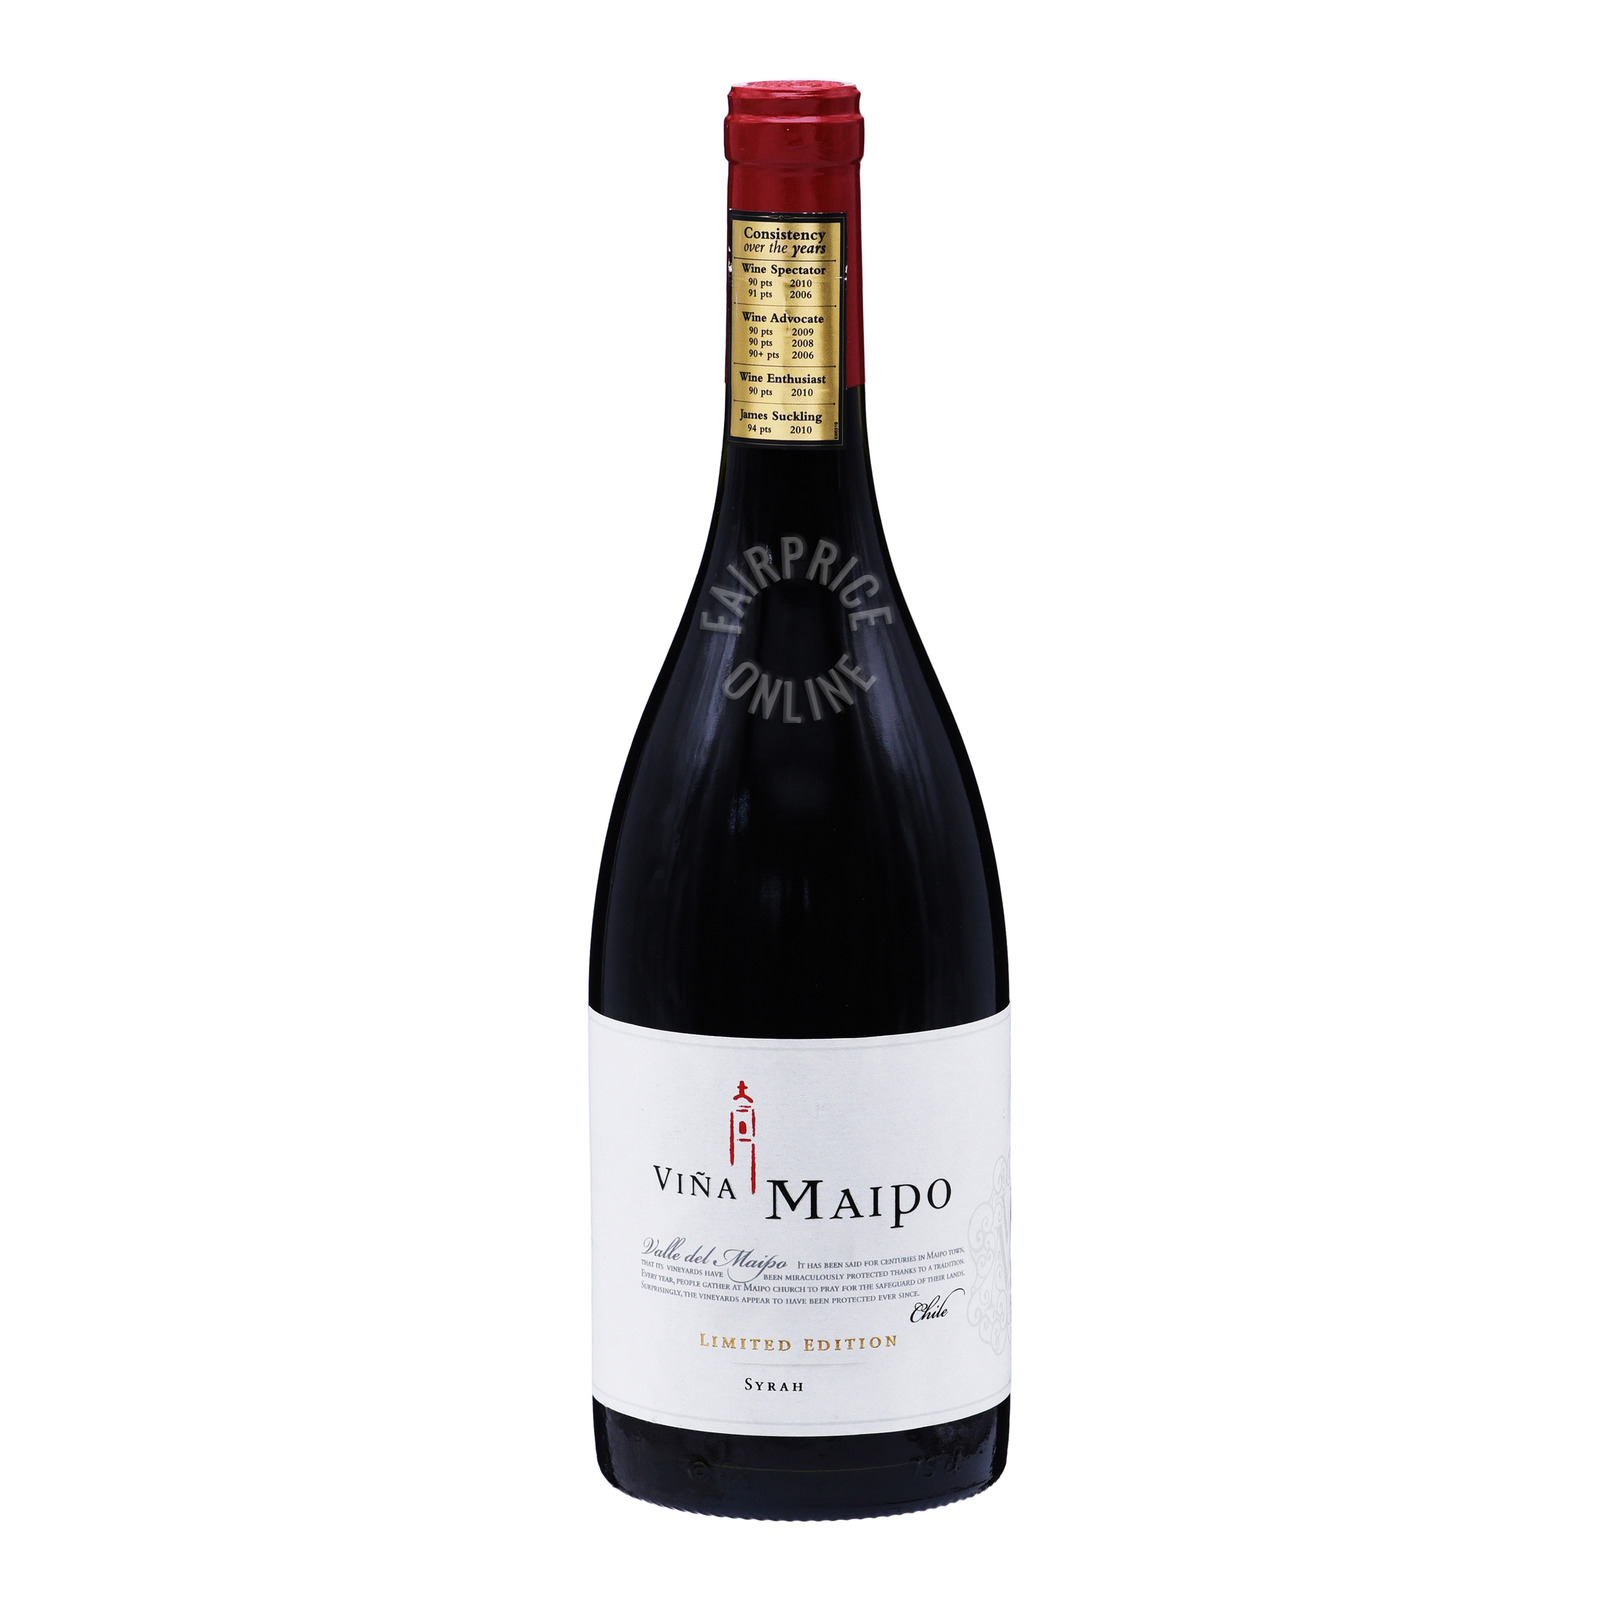 Vina Maipo Limited Edition Red Wine - Syrah